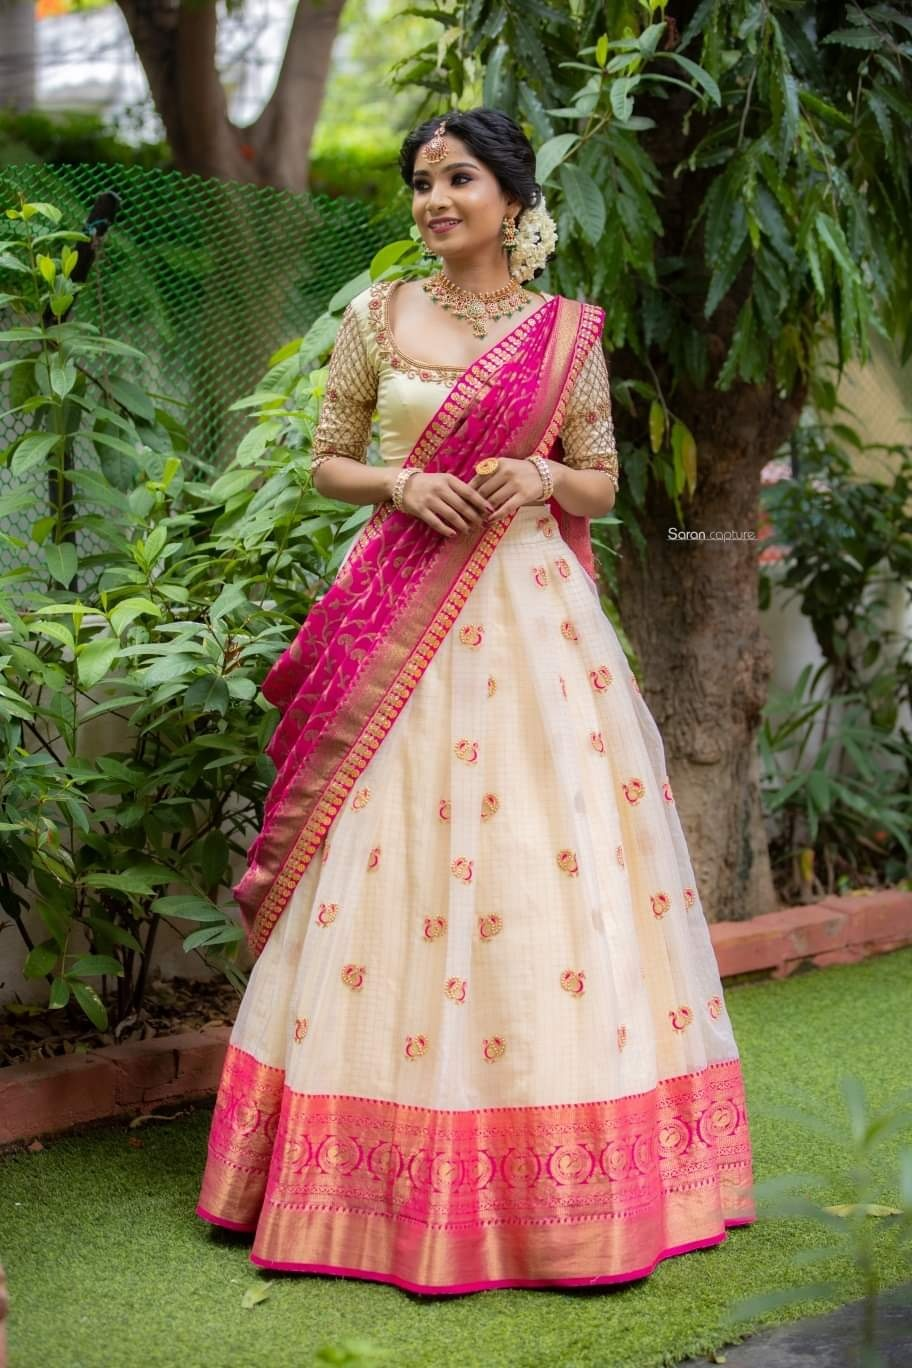 Off white and pink halfsaree. . . off white pleated skirt paired with Embroidered blouse and pink banarasi dupatta✨ Place your orders now!  . . For orders & queries please whatsapp  on  9952093562 or Reach  on 044 4262 4085. 2021-09-01